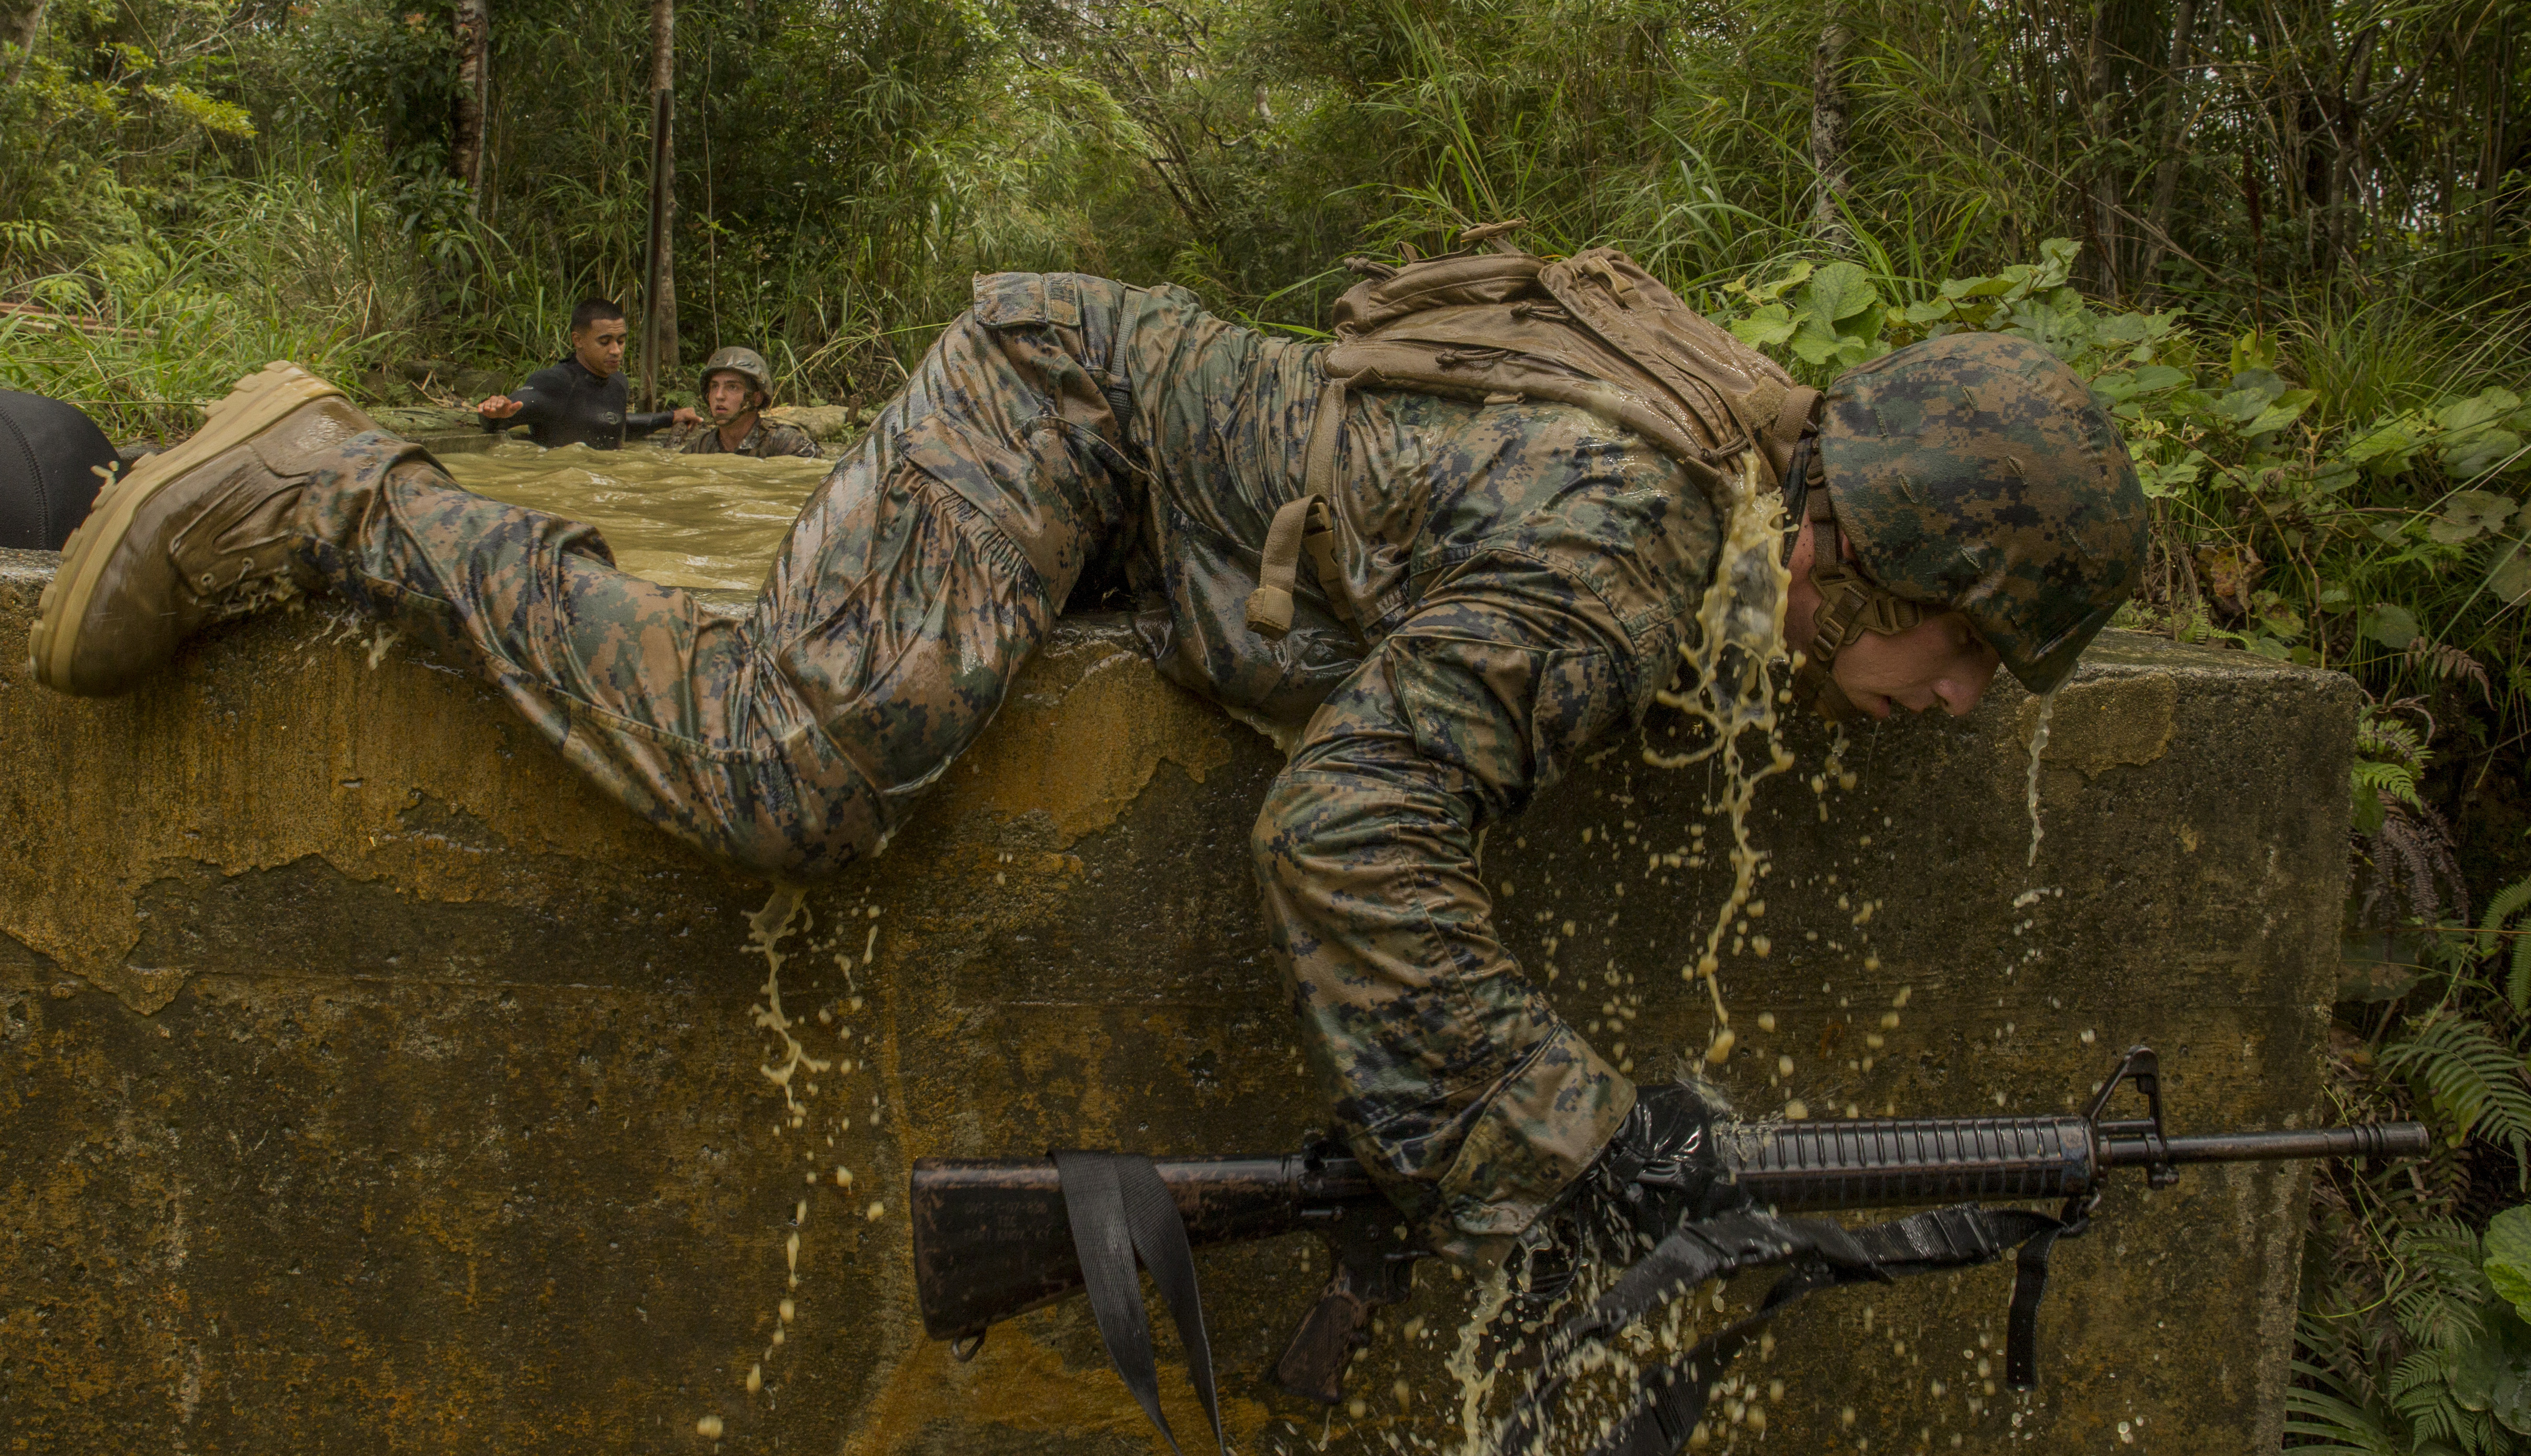 Marines To Test New Fast Drying Tropical Uniforms Boots